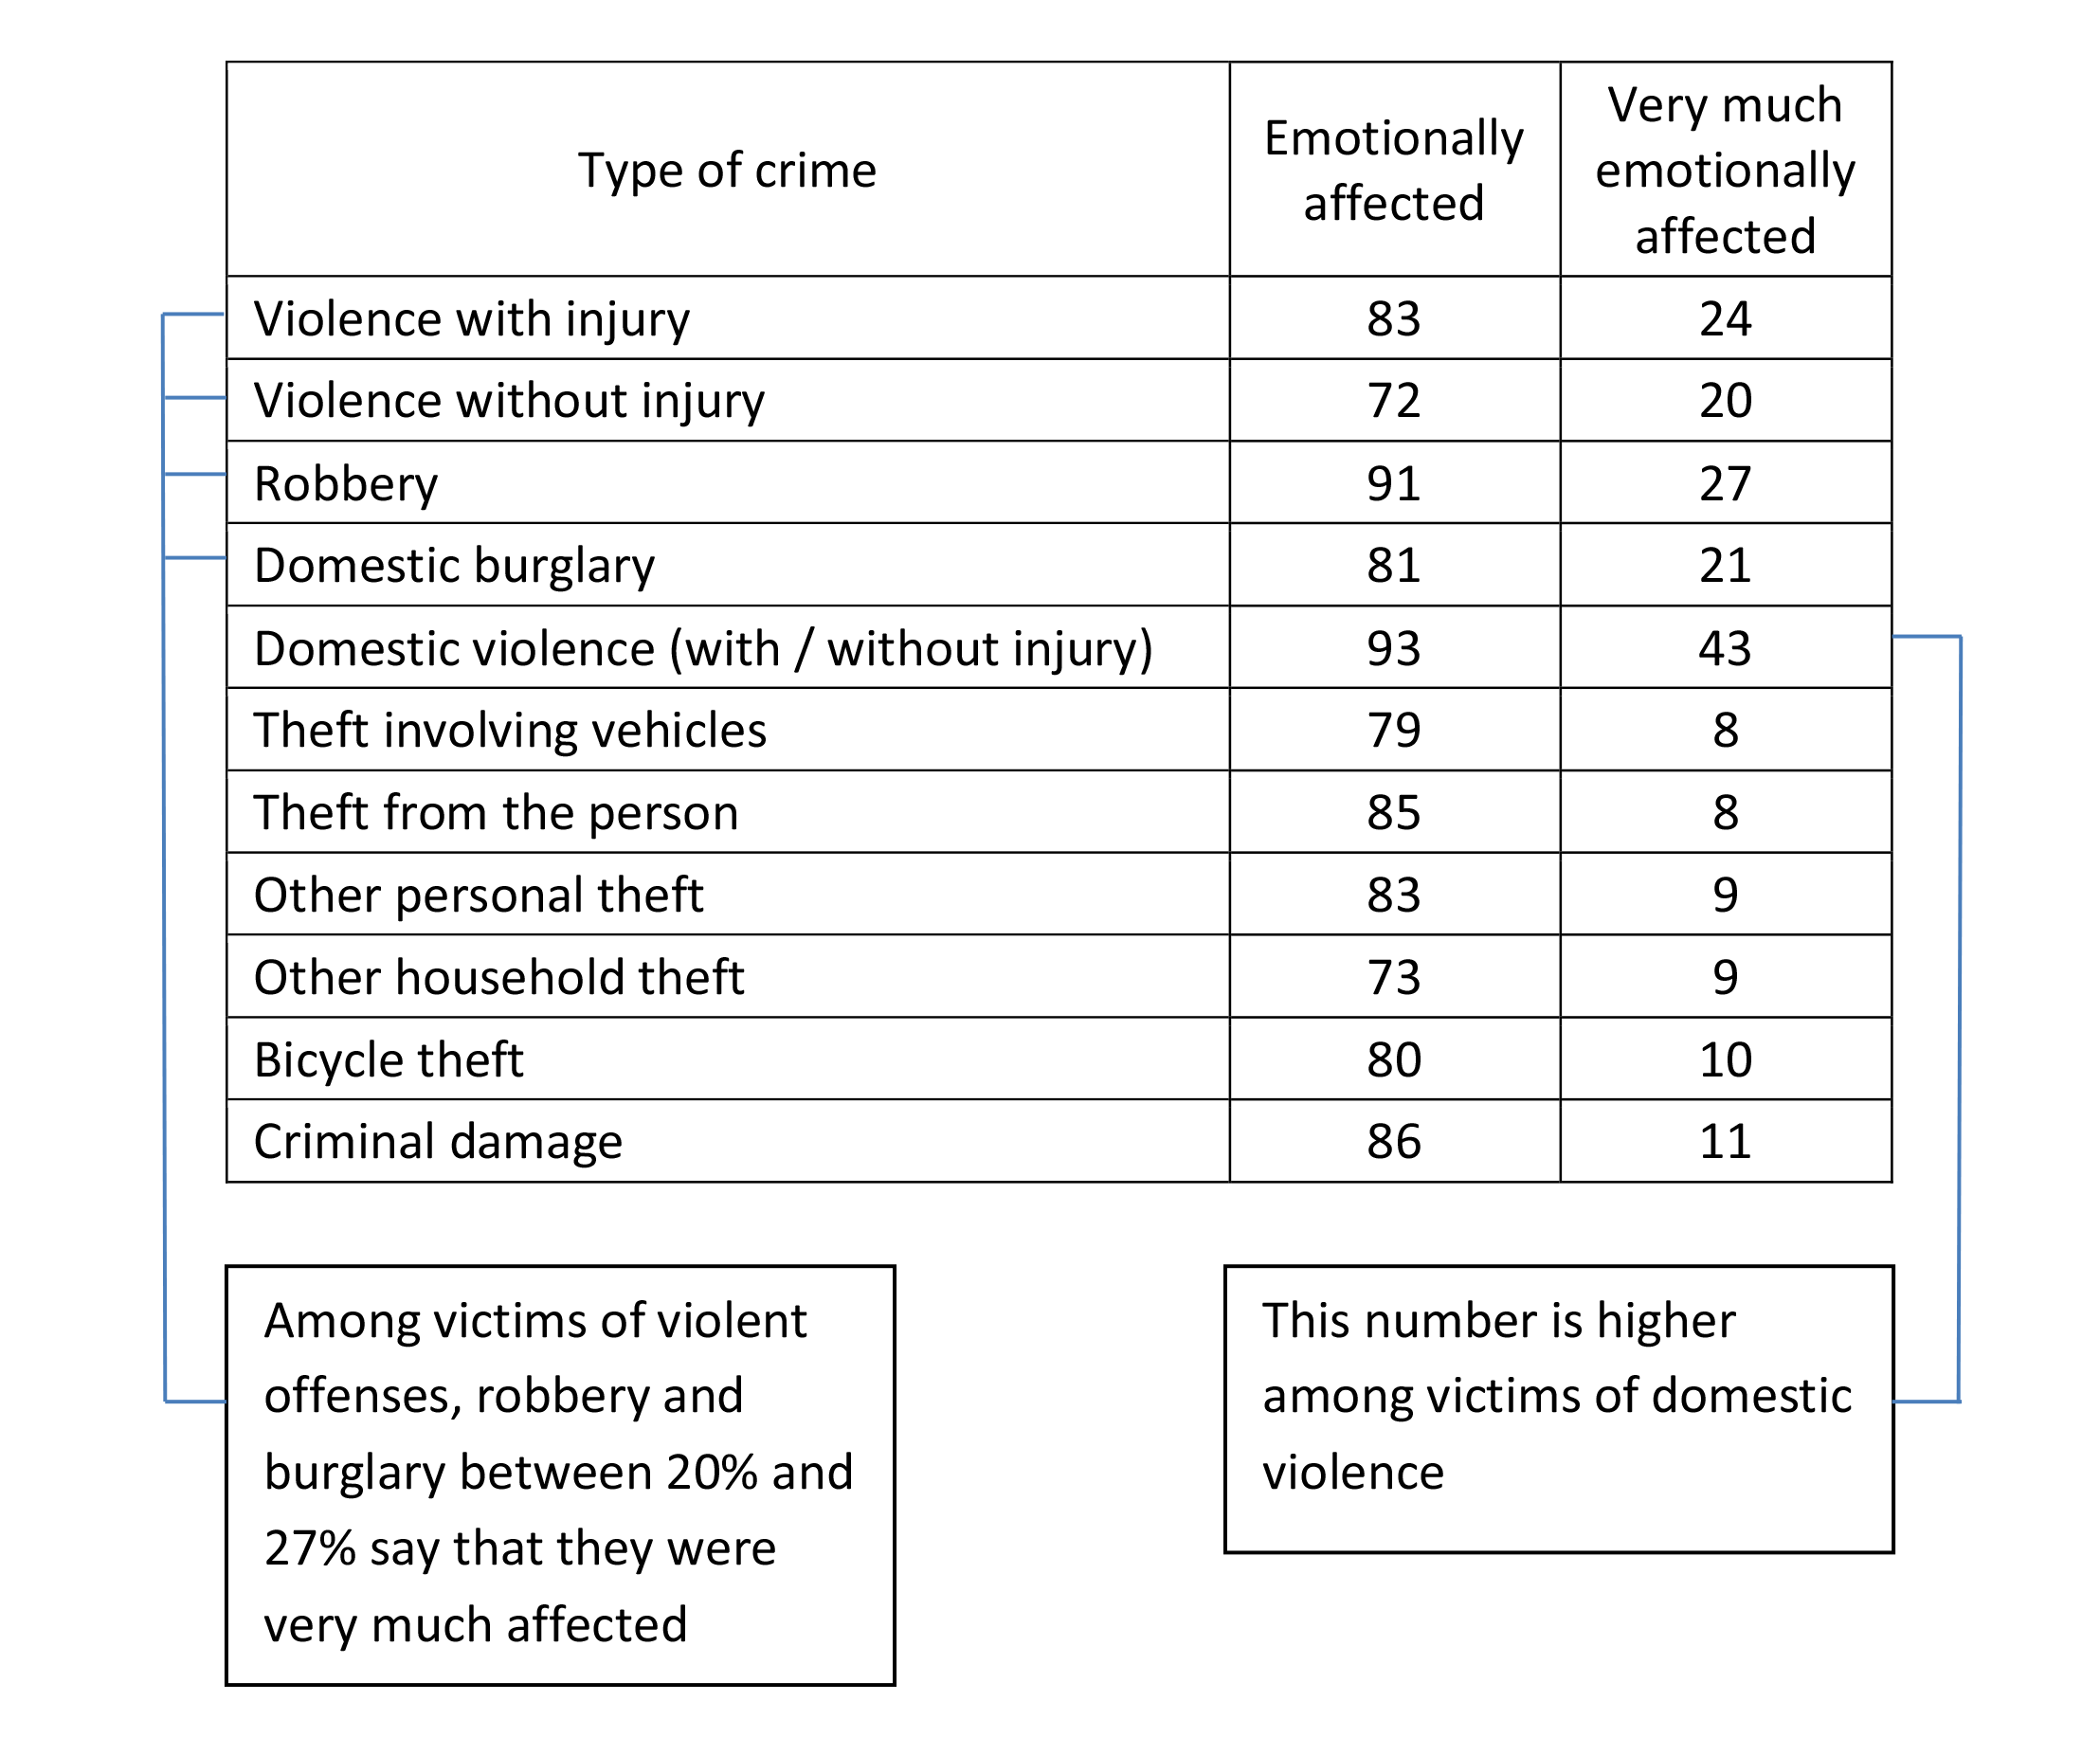 Percentage of victims aged 16-59 who said that they were emotionally affected or very much affected by victimisation, 2013/2014 Crime Survey for England and Wales. An accessibility tagged version of this table is available as a downloadable resource at the bottom of this step.